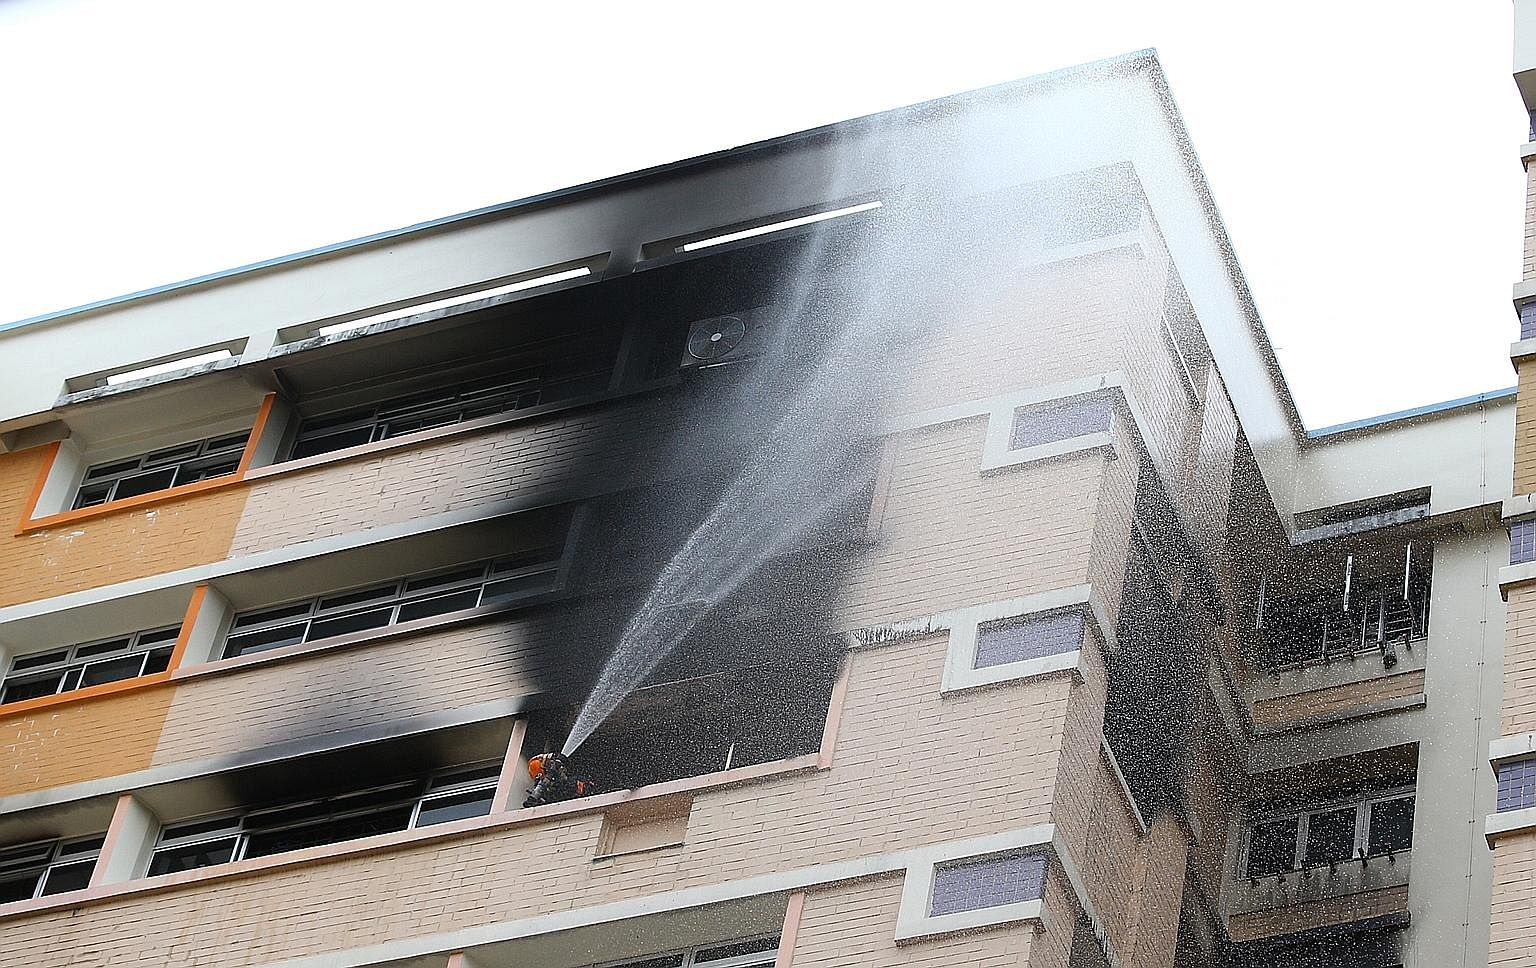 If a neighbouring unit is ablaze and rescuers have not arrived, it is advisable to leave, alert one's neighbours, and evacuate to a refuge floor or to the ground level without using the lifts.